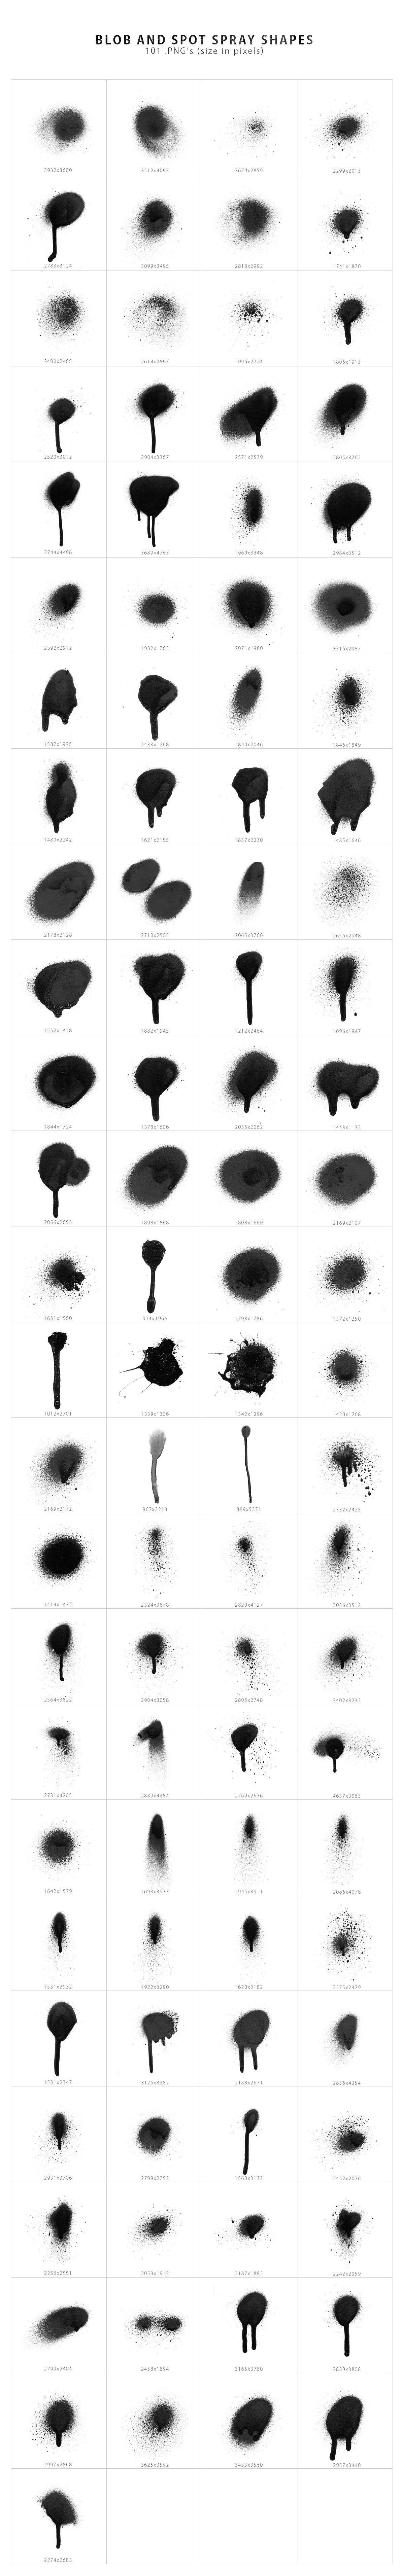 Spray Shapes & Textures example image 8